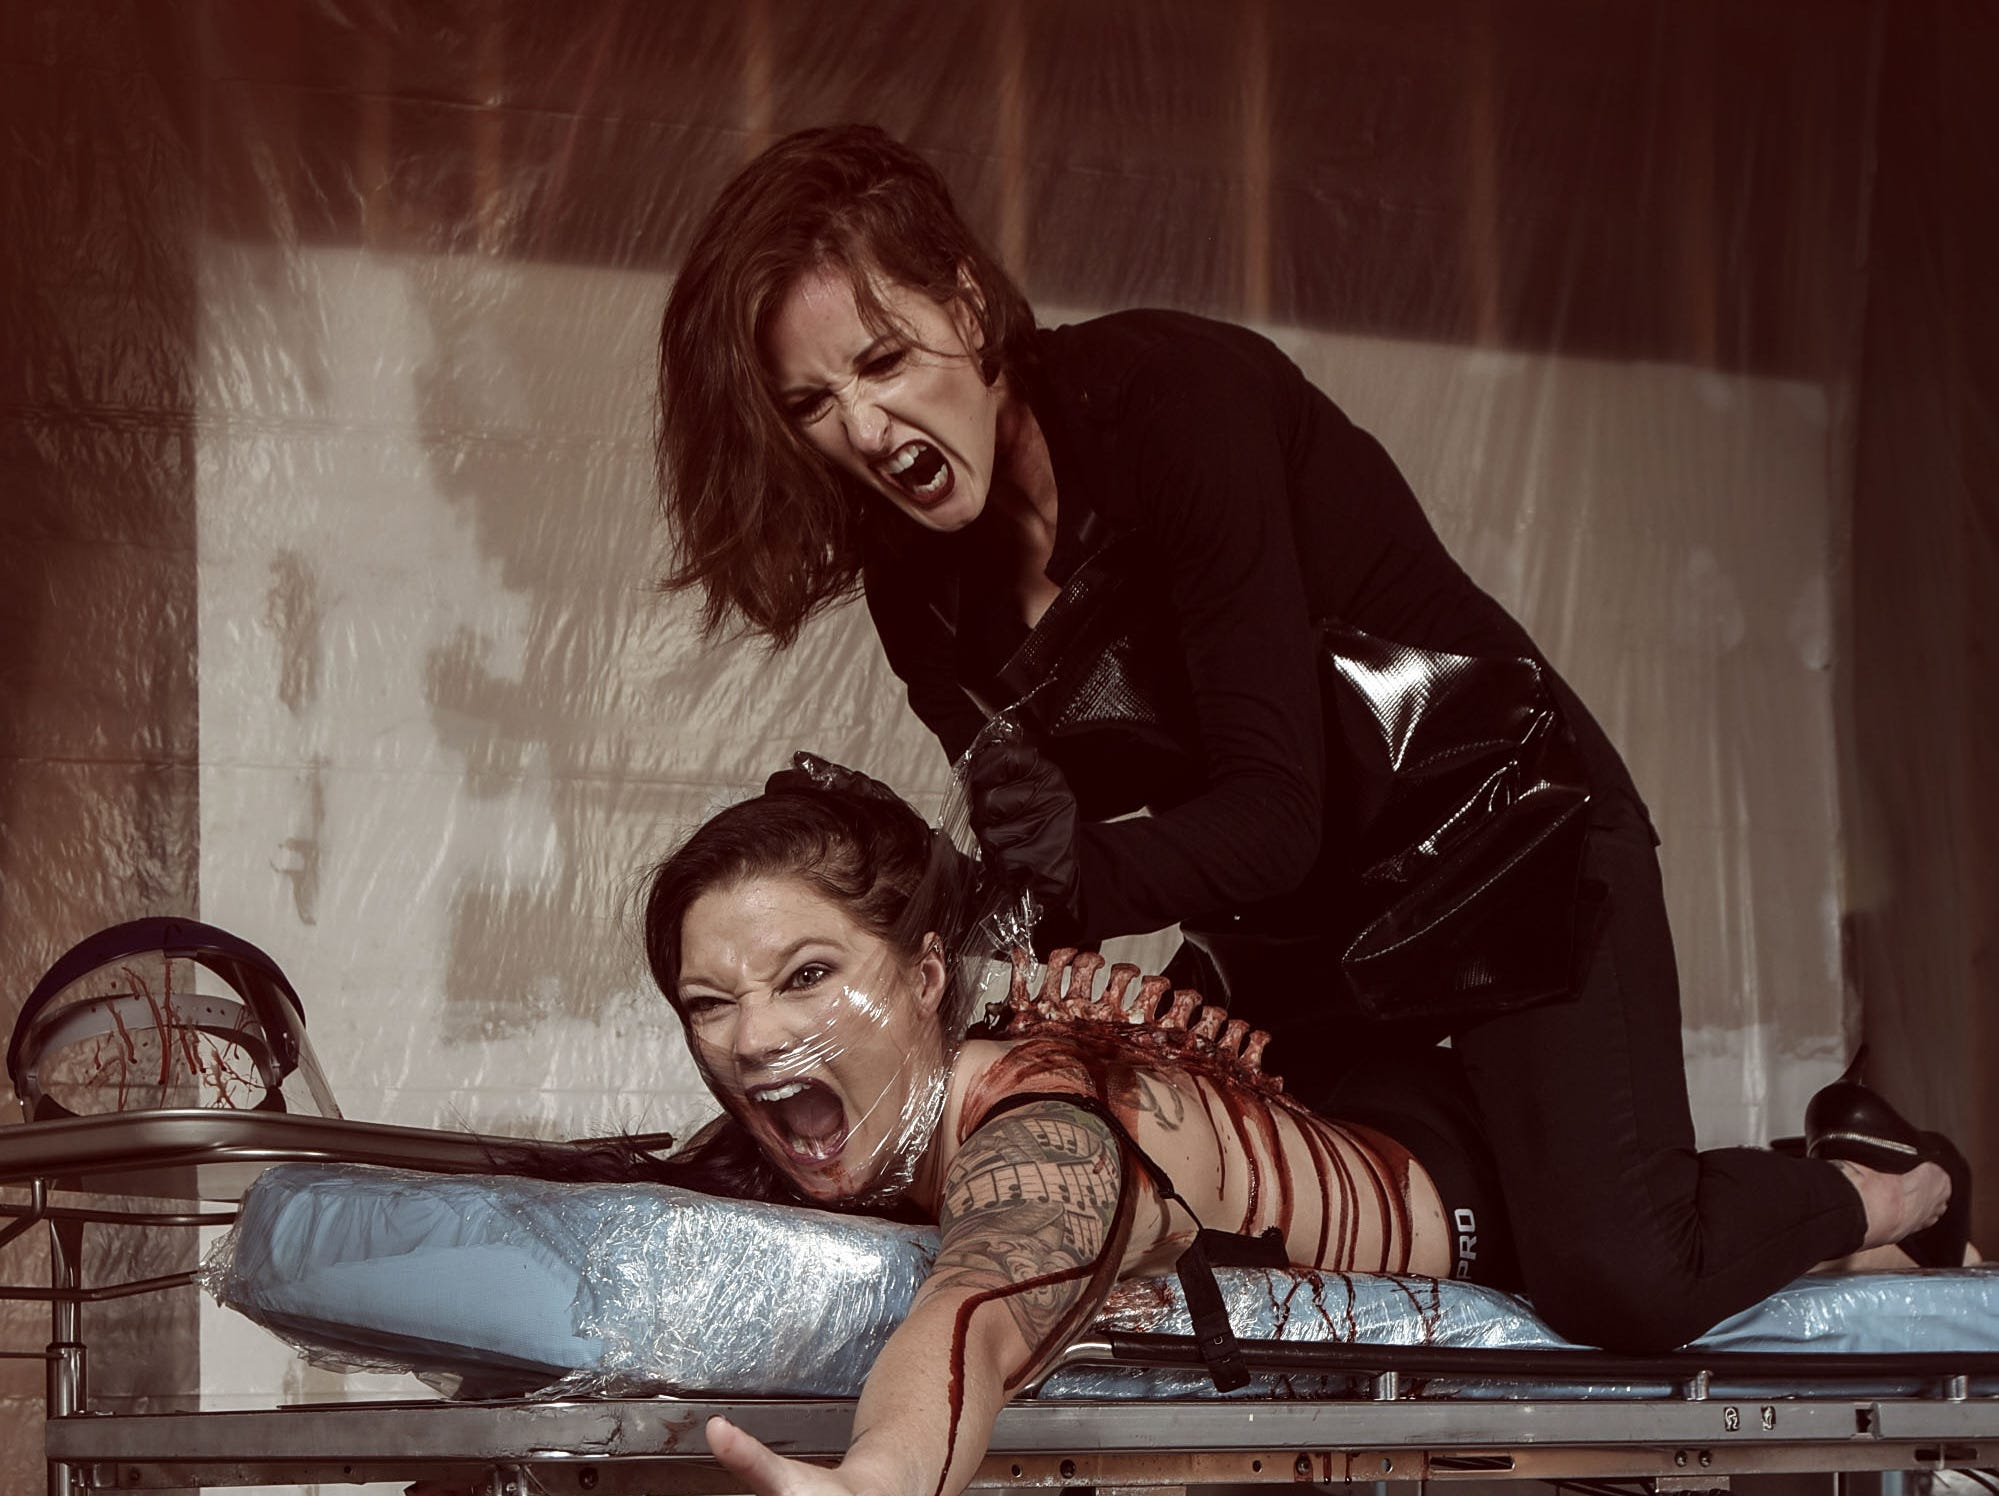 Lori Cannon portrays the mad physician with Leighann Word as the victim in this horror-themed photo session by Mallory Bertrand. Special effects by Ash Mac.